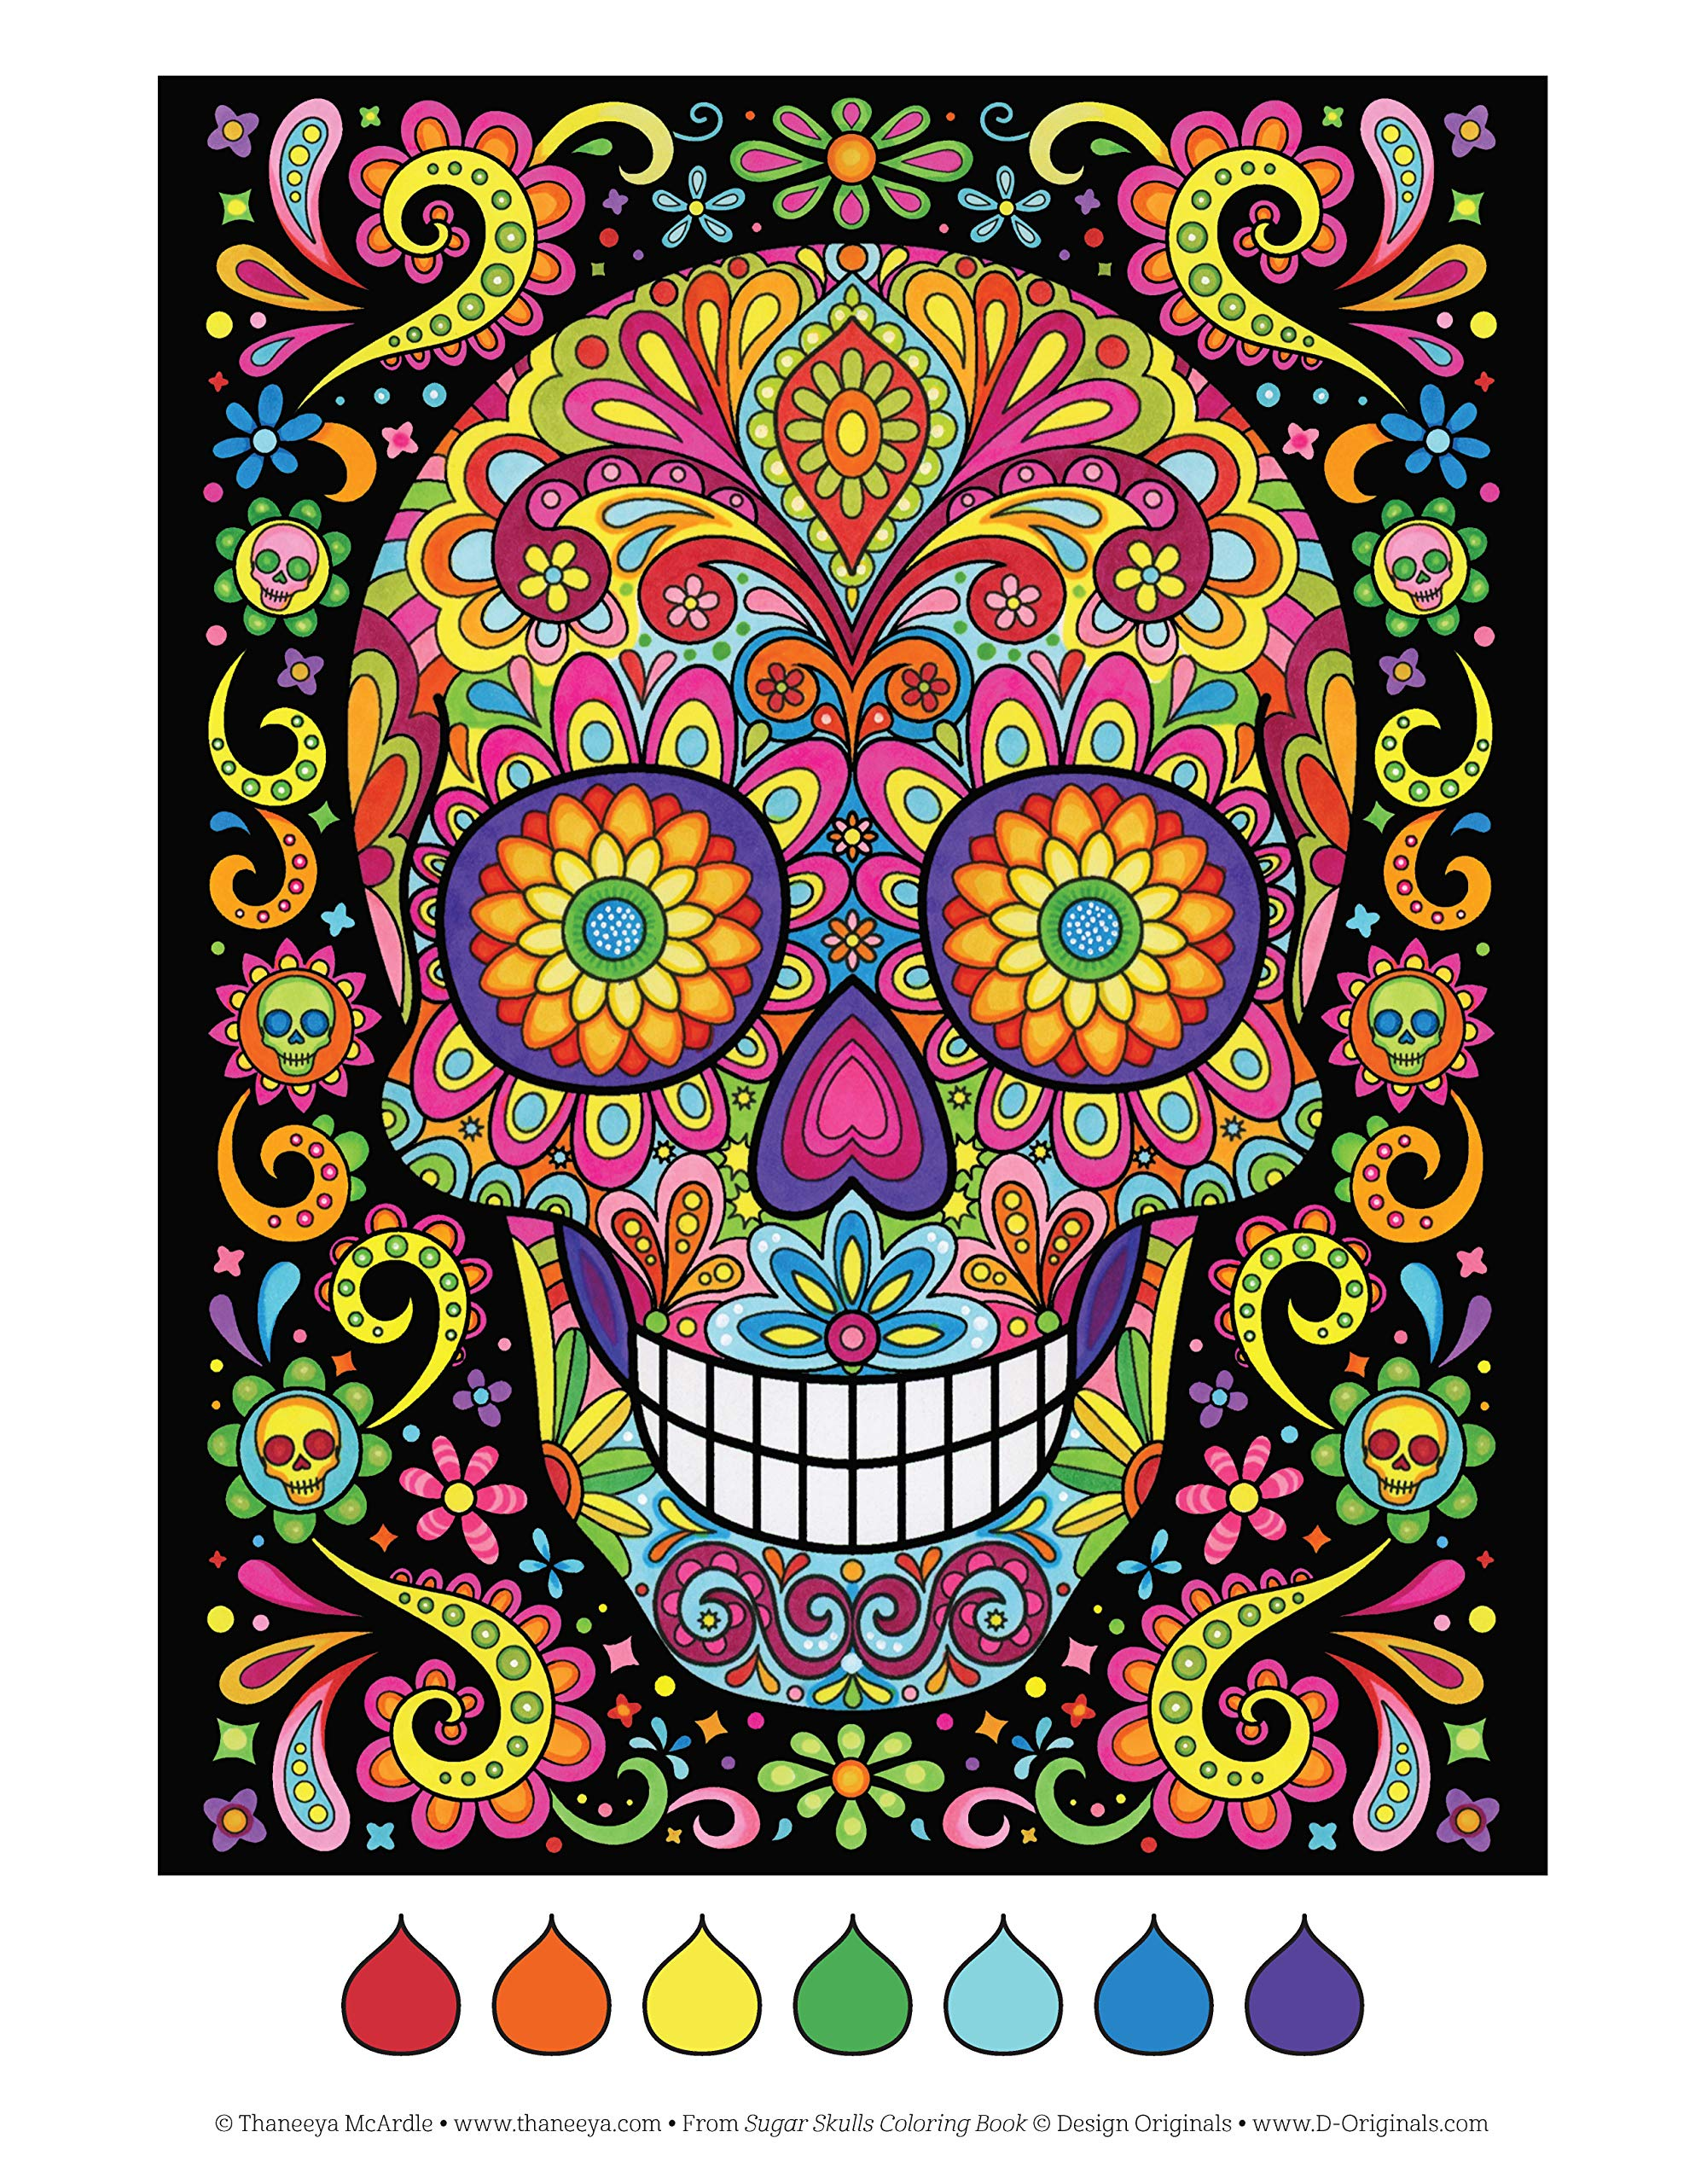 Sugar Skulls Coloring Book Fun Funky Day Of The Dead Designs Mcardle Thaneeya 9781497202047 Books Amazon Ca